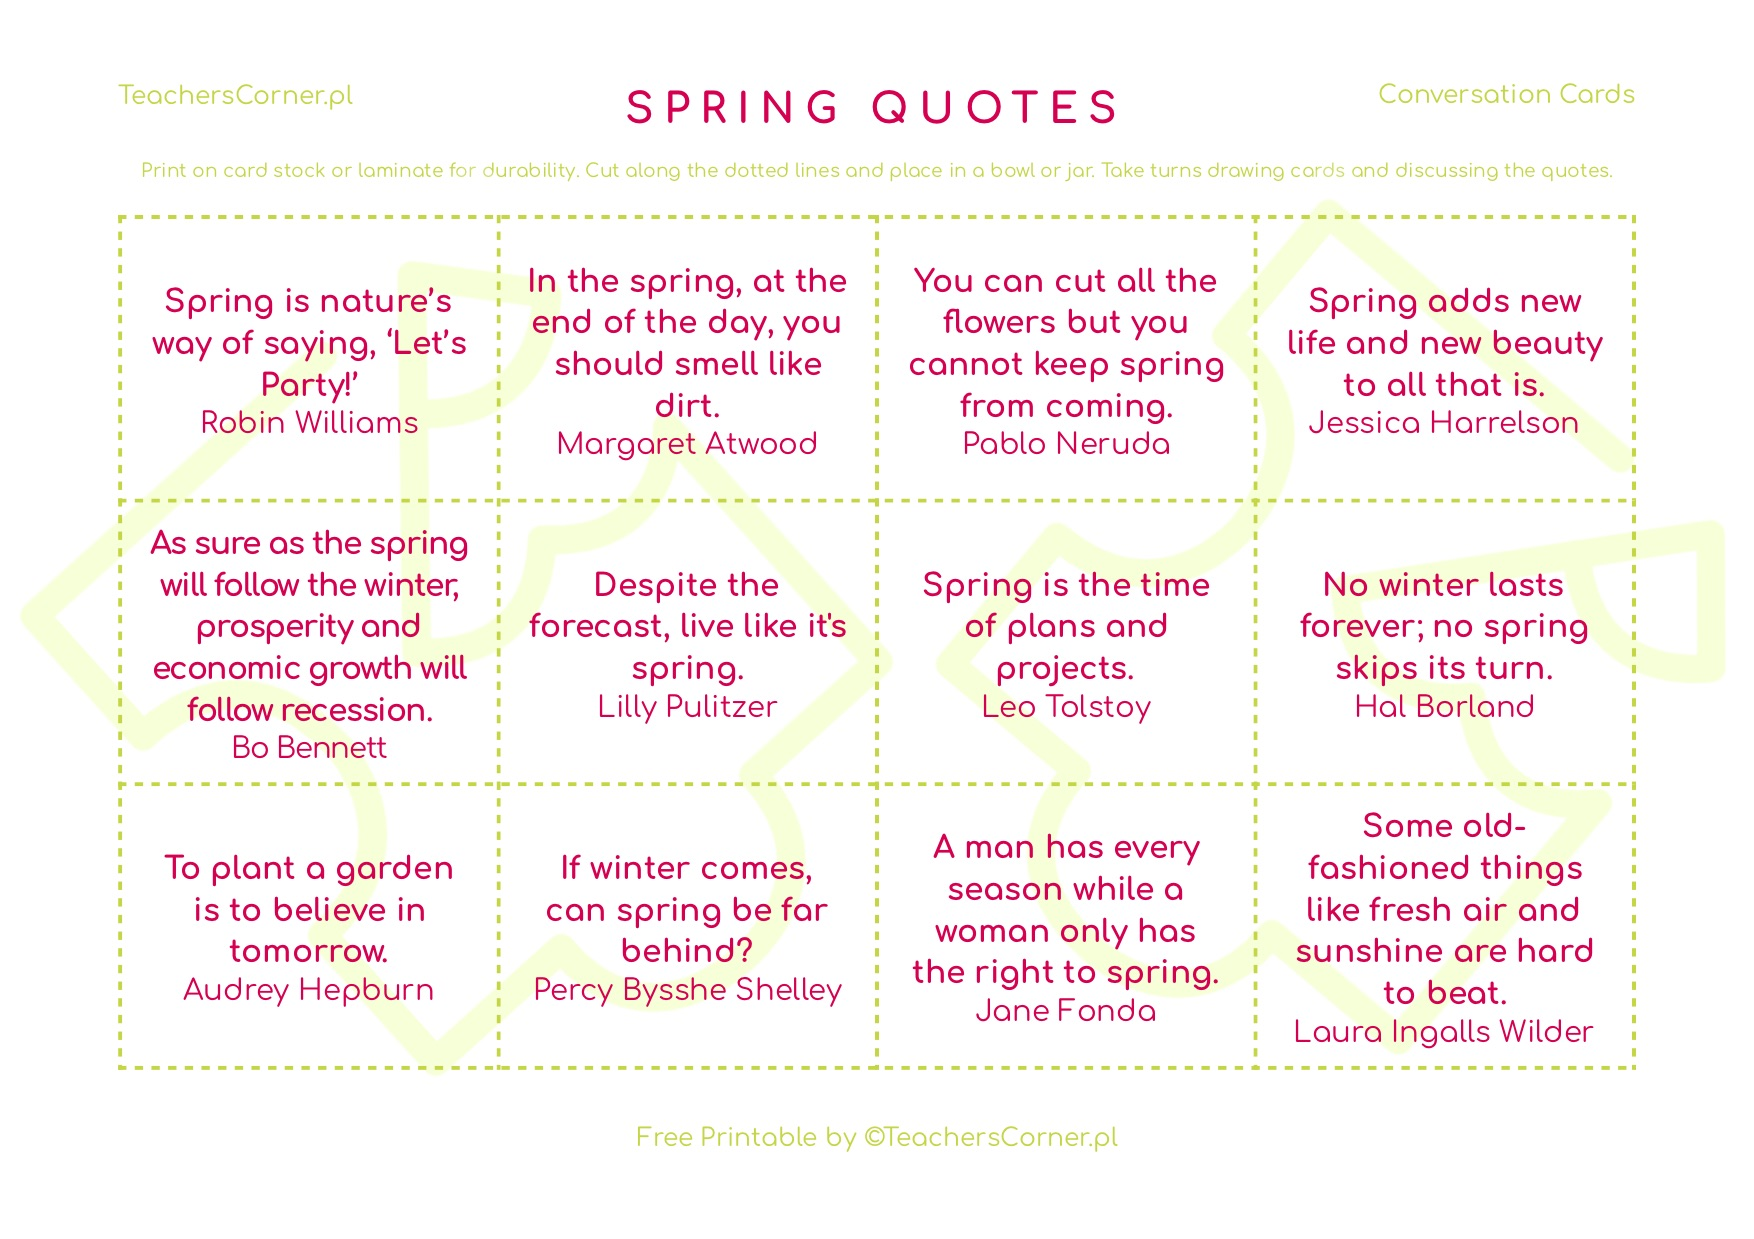 spring quotes conversation cards